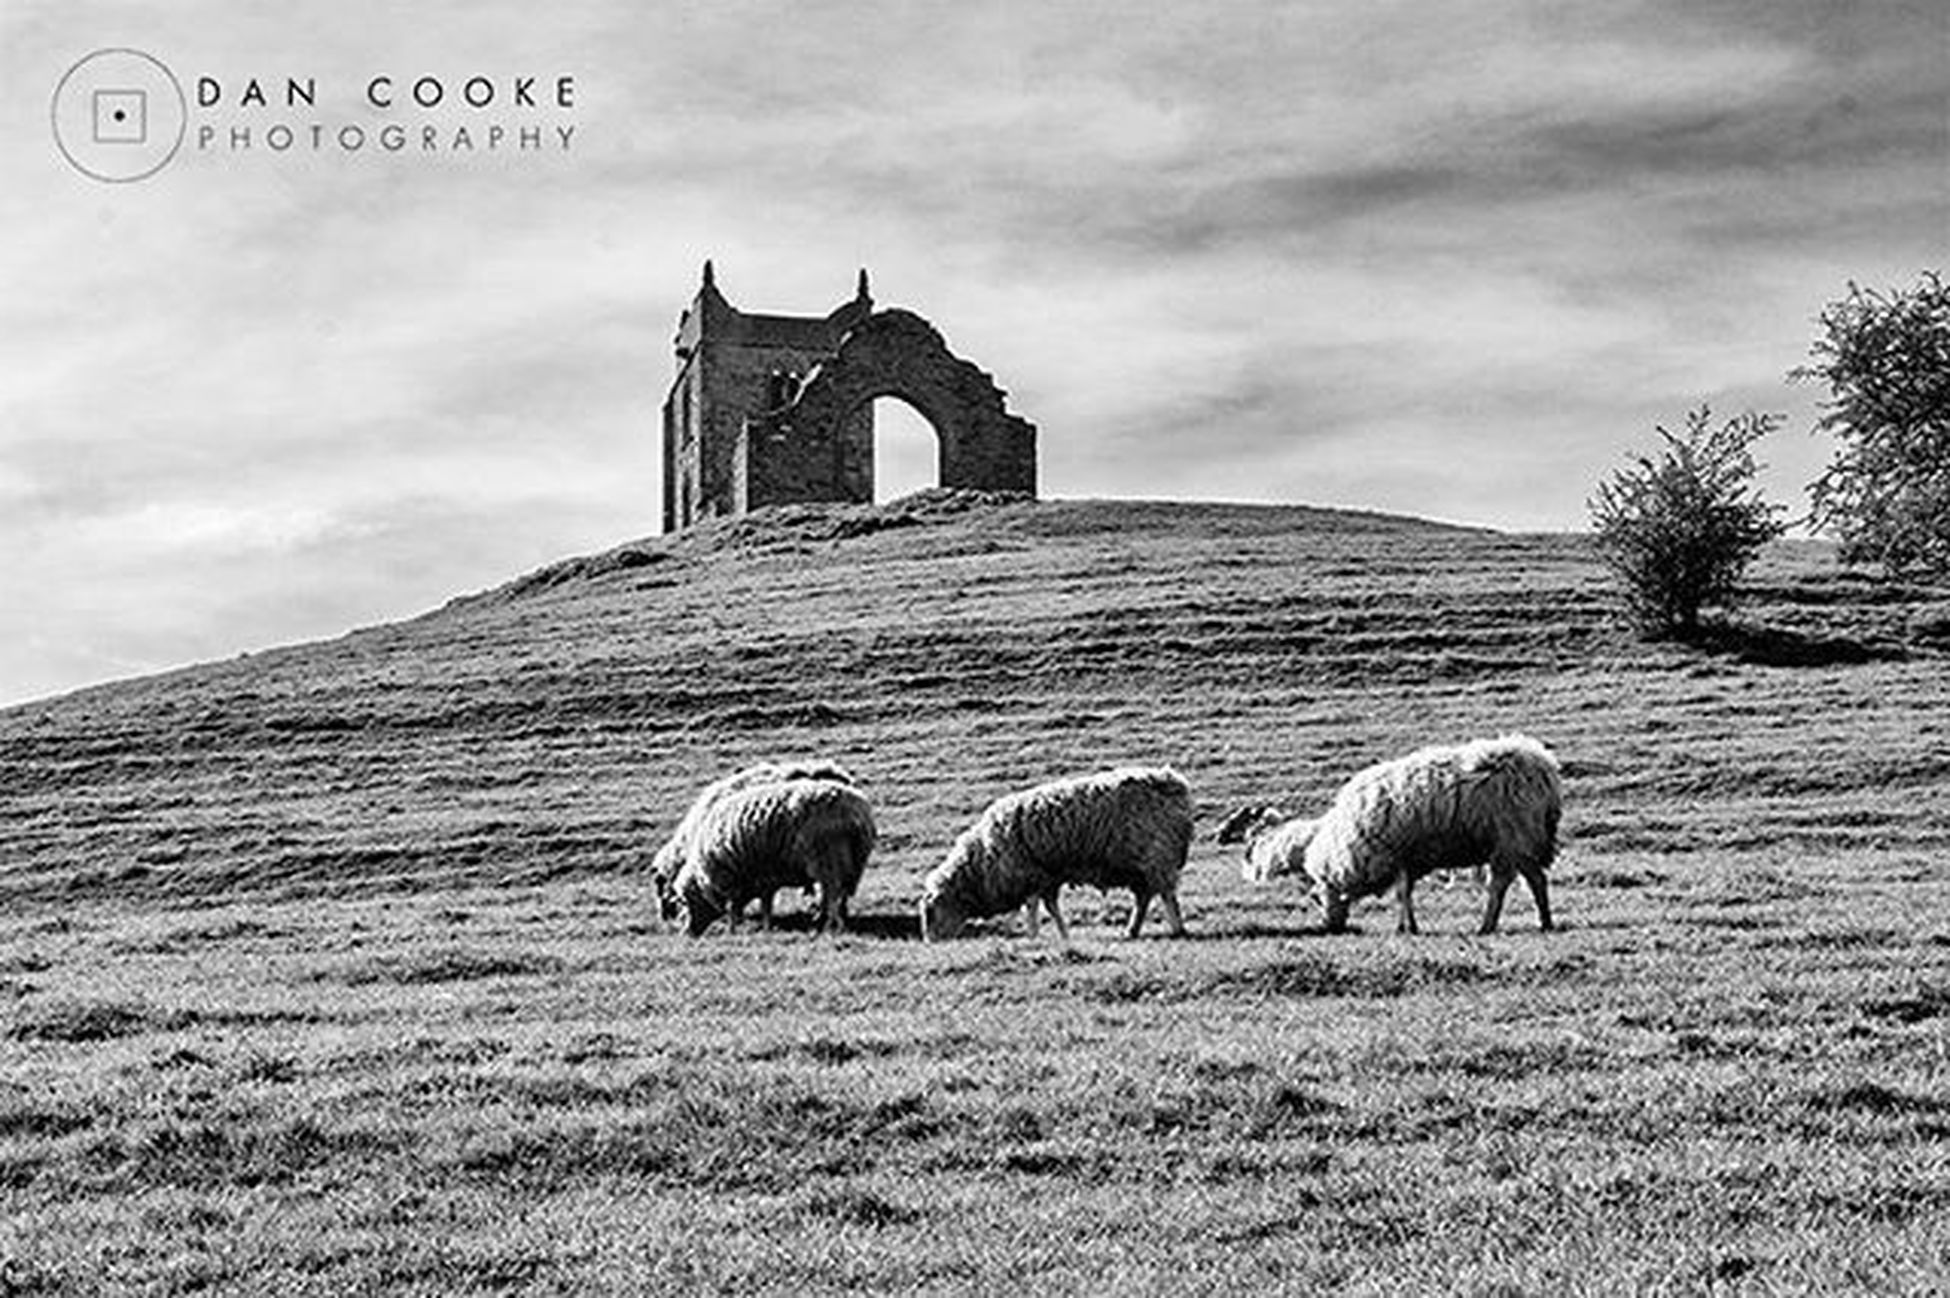 More from my afternoon with the camera out on the Somerset Levels Burrowmump Burrowbridge Somerset Monophotography Monochrome Monoart Blacknwhite